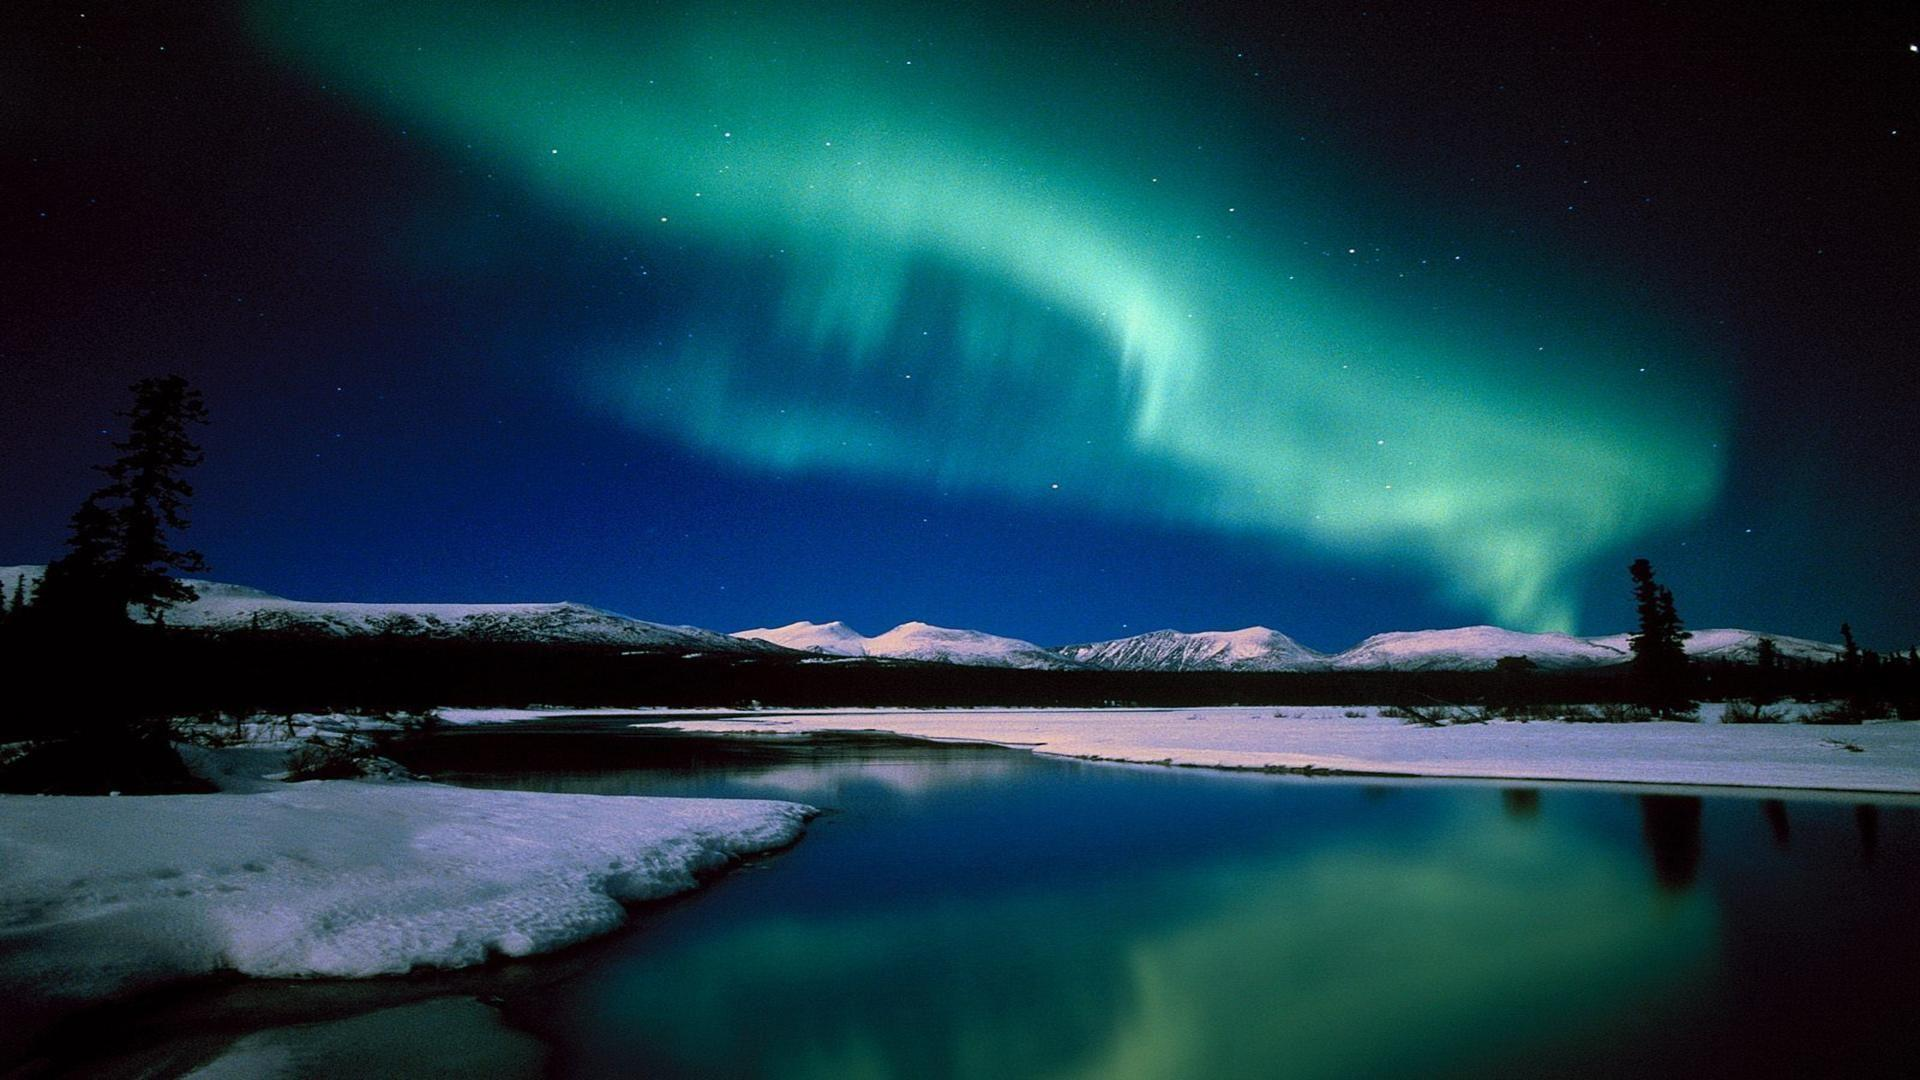 Aurora Borealis Wallpaper Full HD Desktop